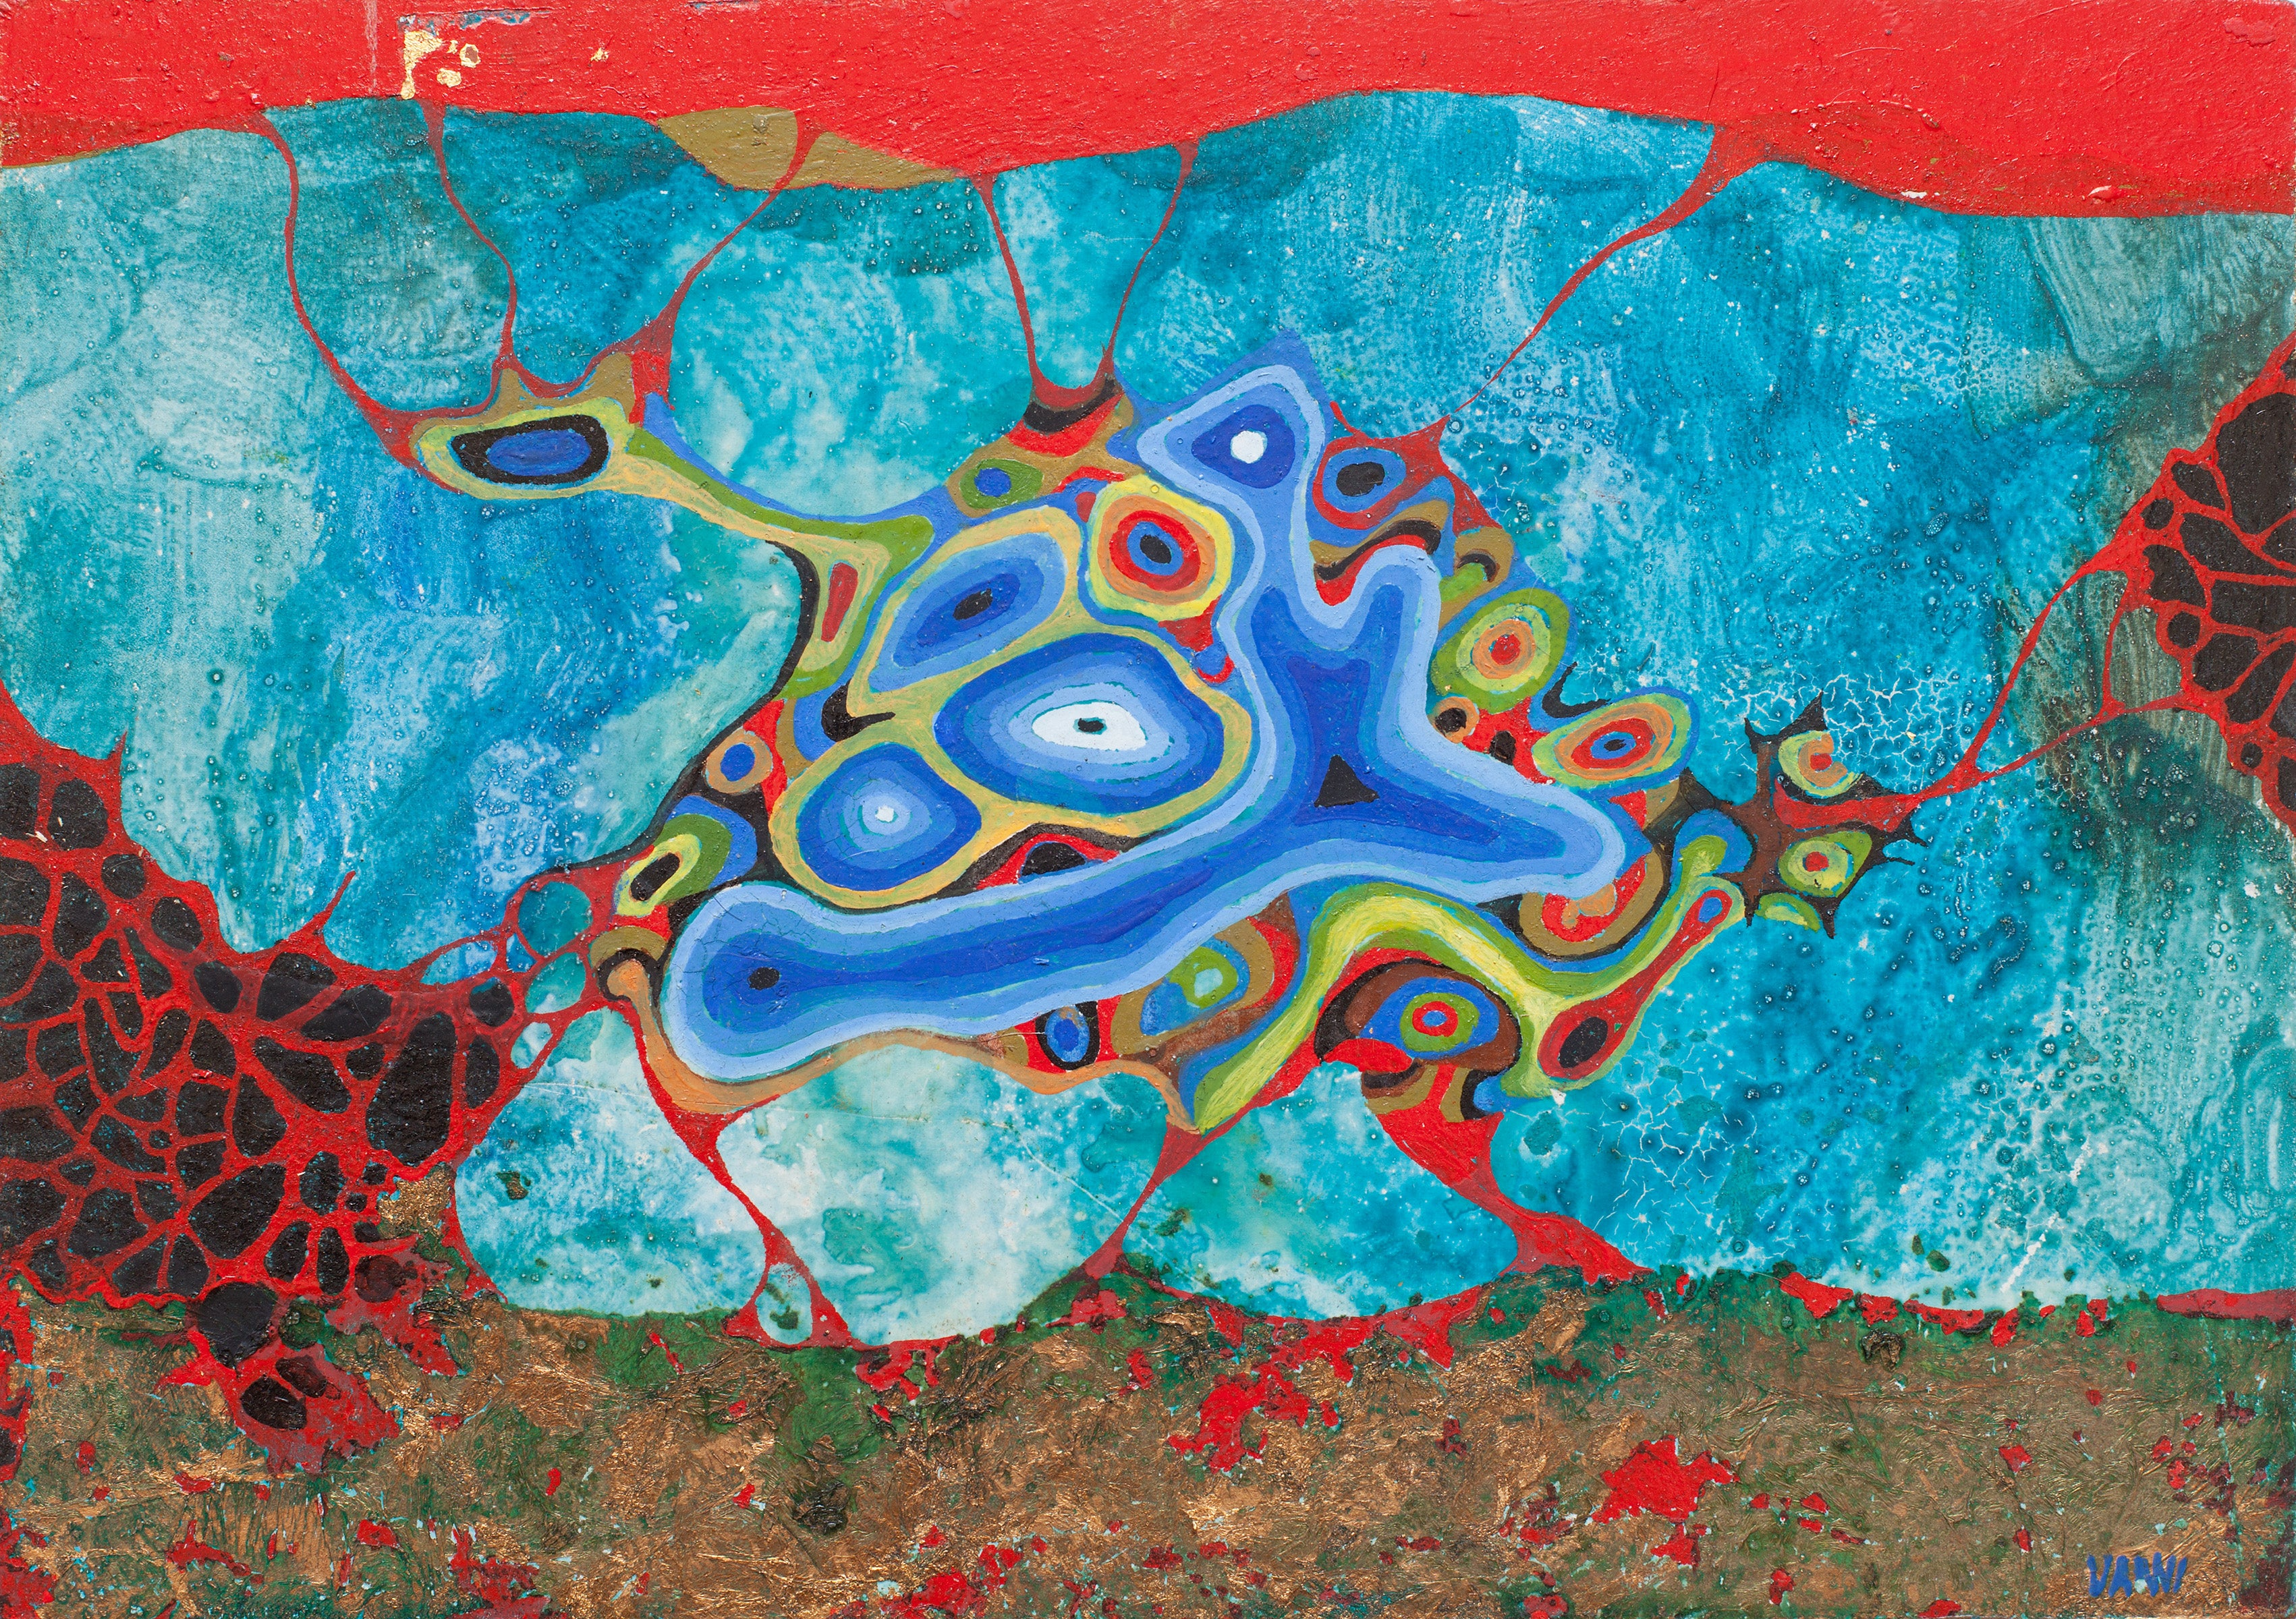 Subaqueous Dinosaur - Abstract Surrealism Tempera Miniature with Gold Leaf